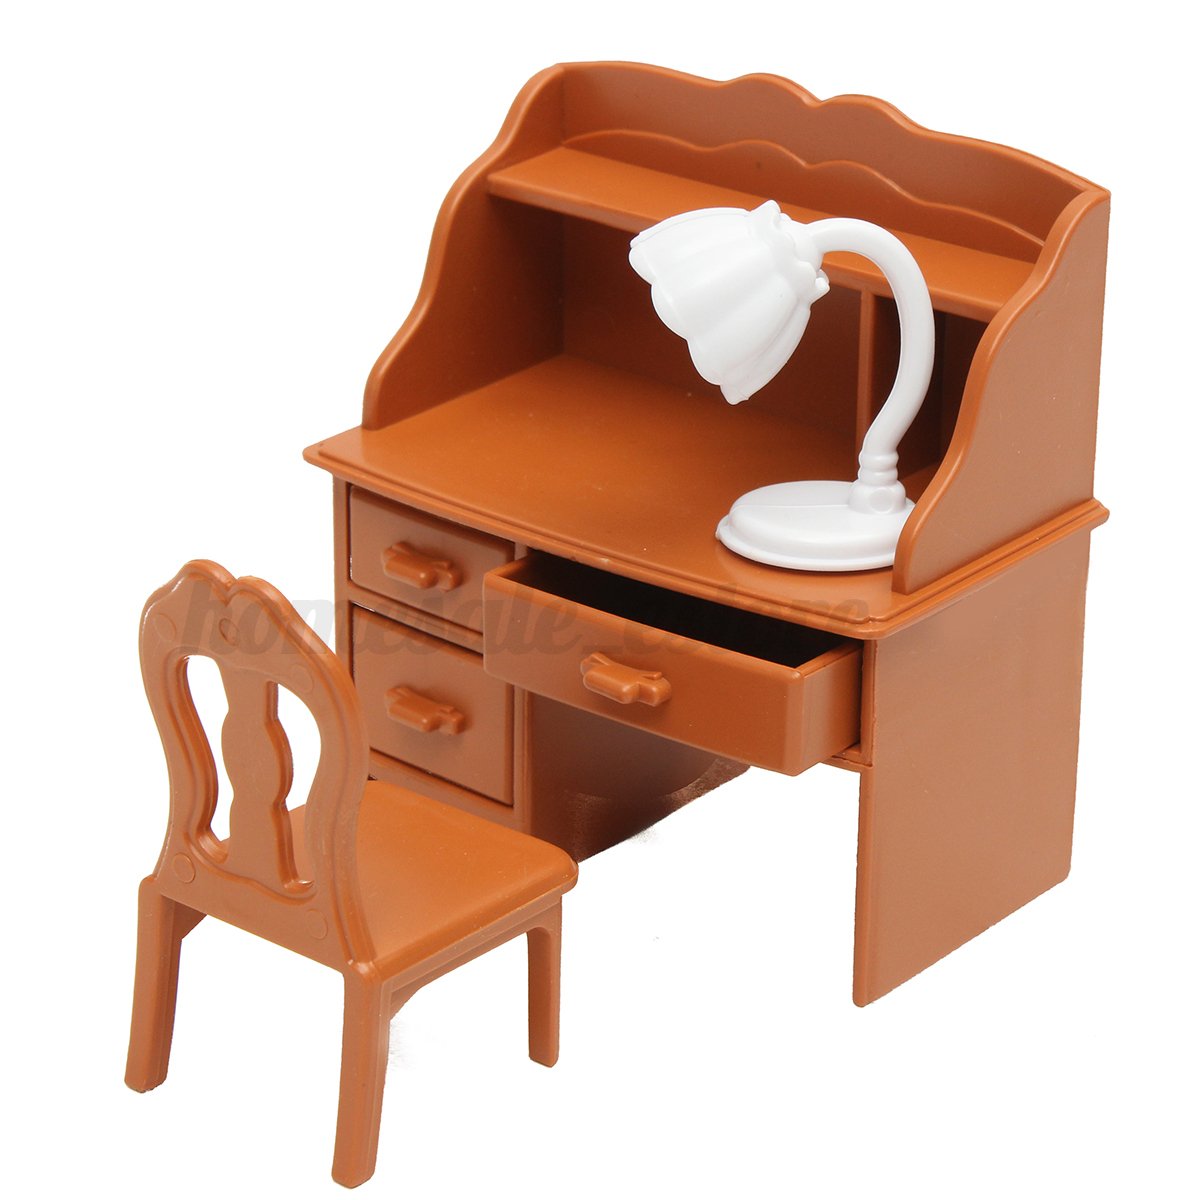 Vintage plastic dollhouse furniture speaking